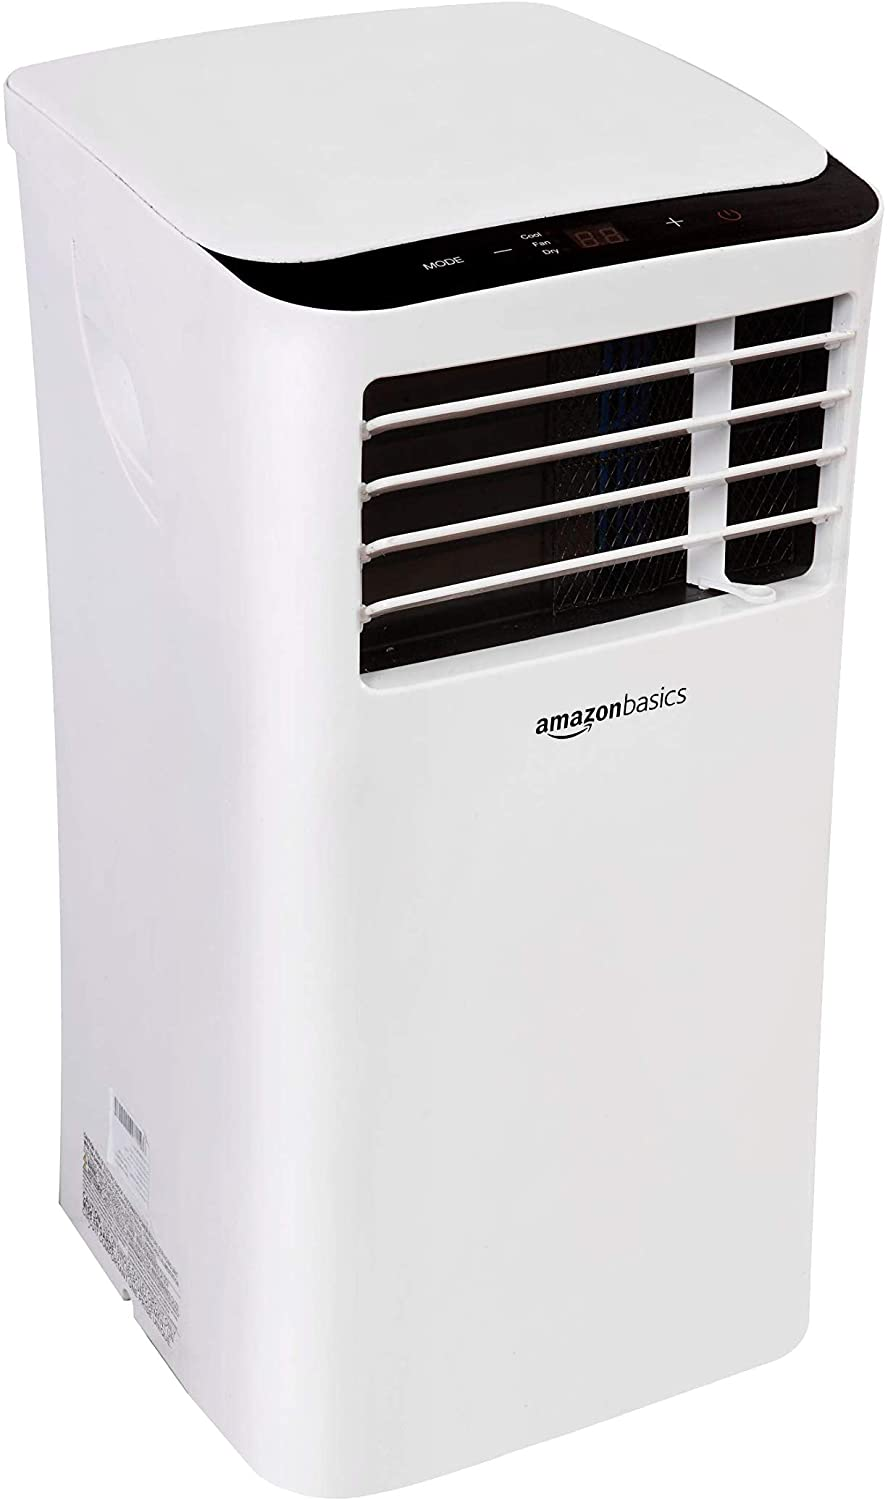 Amazon Basics Portable Air Conditioner with Remote